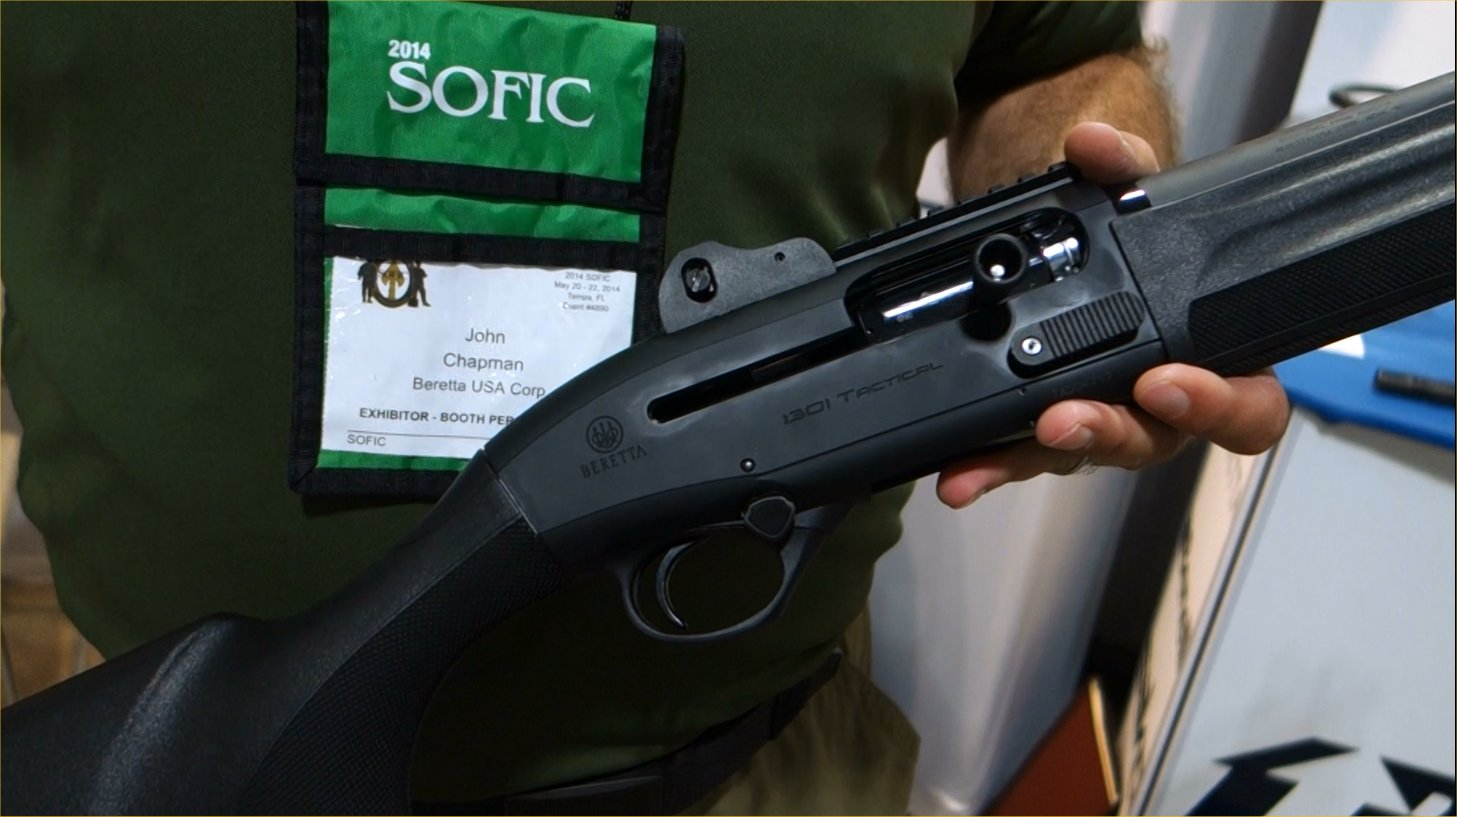 Beretta 1301 Tactical 12 Gauge Semi Auto Combat Tactical Shotgun John Chappie Chapman Beretta Defense Technologies BDT SOFIC 2014 David Crane DefenseReview.com DR 10 Beretta 1301 Tactical Gas Operated 12 Gauge Semi Auto Combat/Tactical Shotgun with Super Fast Blink Action: From Competition to Combat! (Video!)